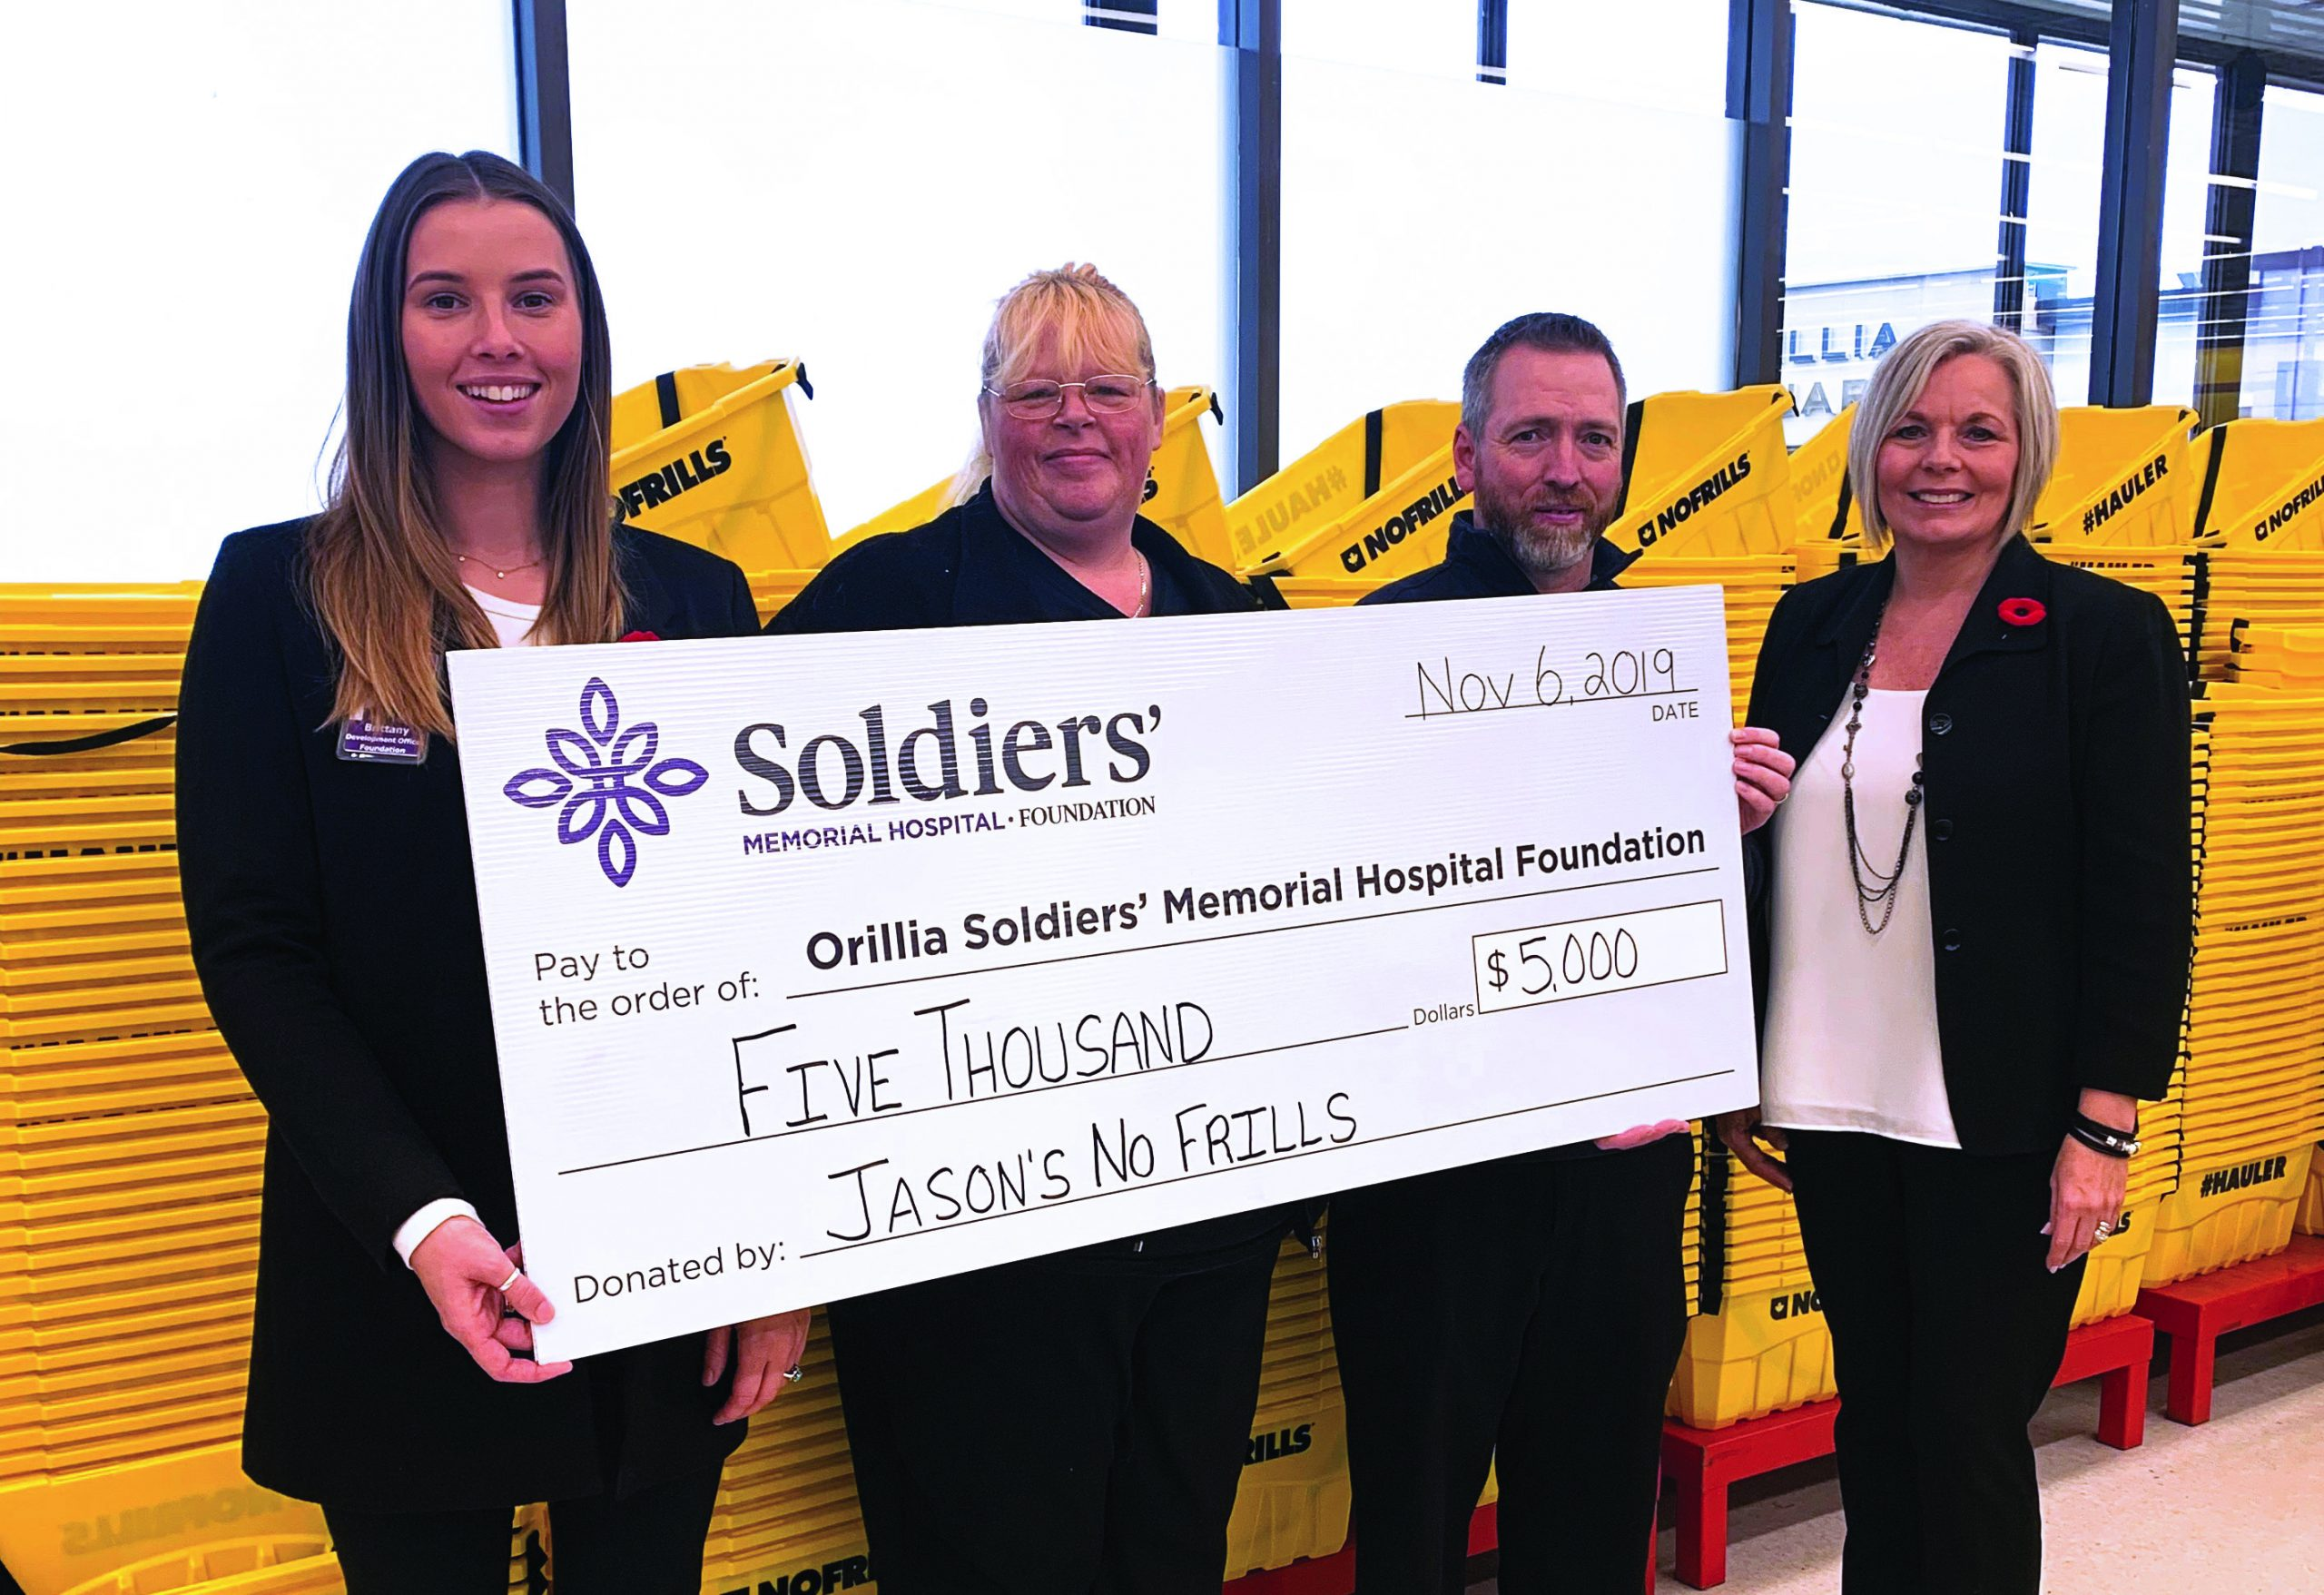 Lisa Steeves (centre left), Jason's No Frills Front End Supervisor and Jason King (centre right), Jason's No Frills Owner present a cheque for $5,000 to Brittany Wilson (left), OSMH Foundation Development Officer and Lisa Wanamaker OSMH Foundation Development Officer.